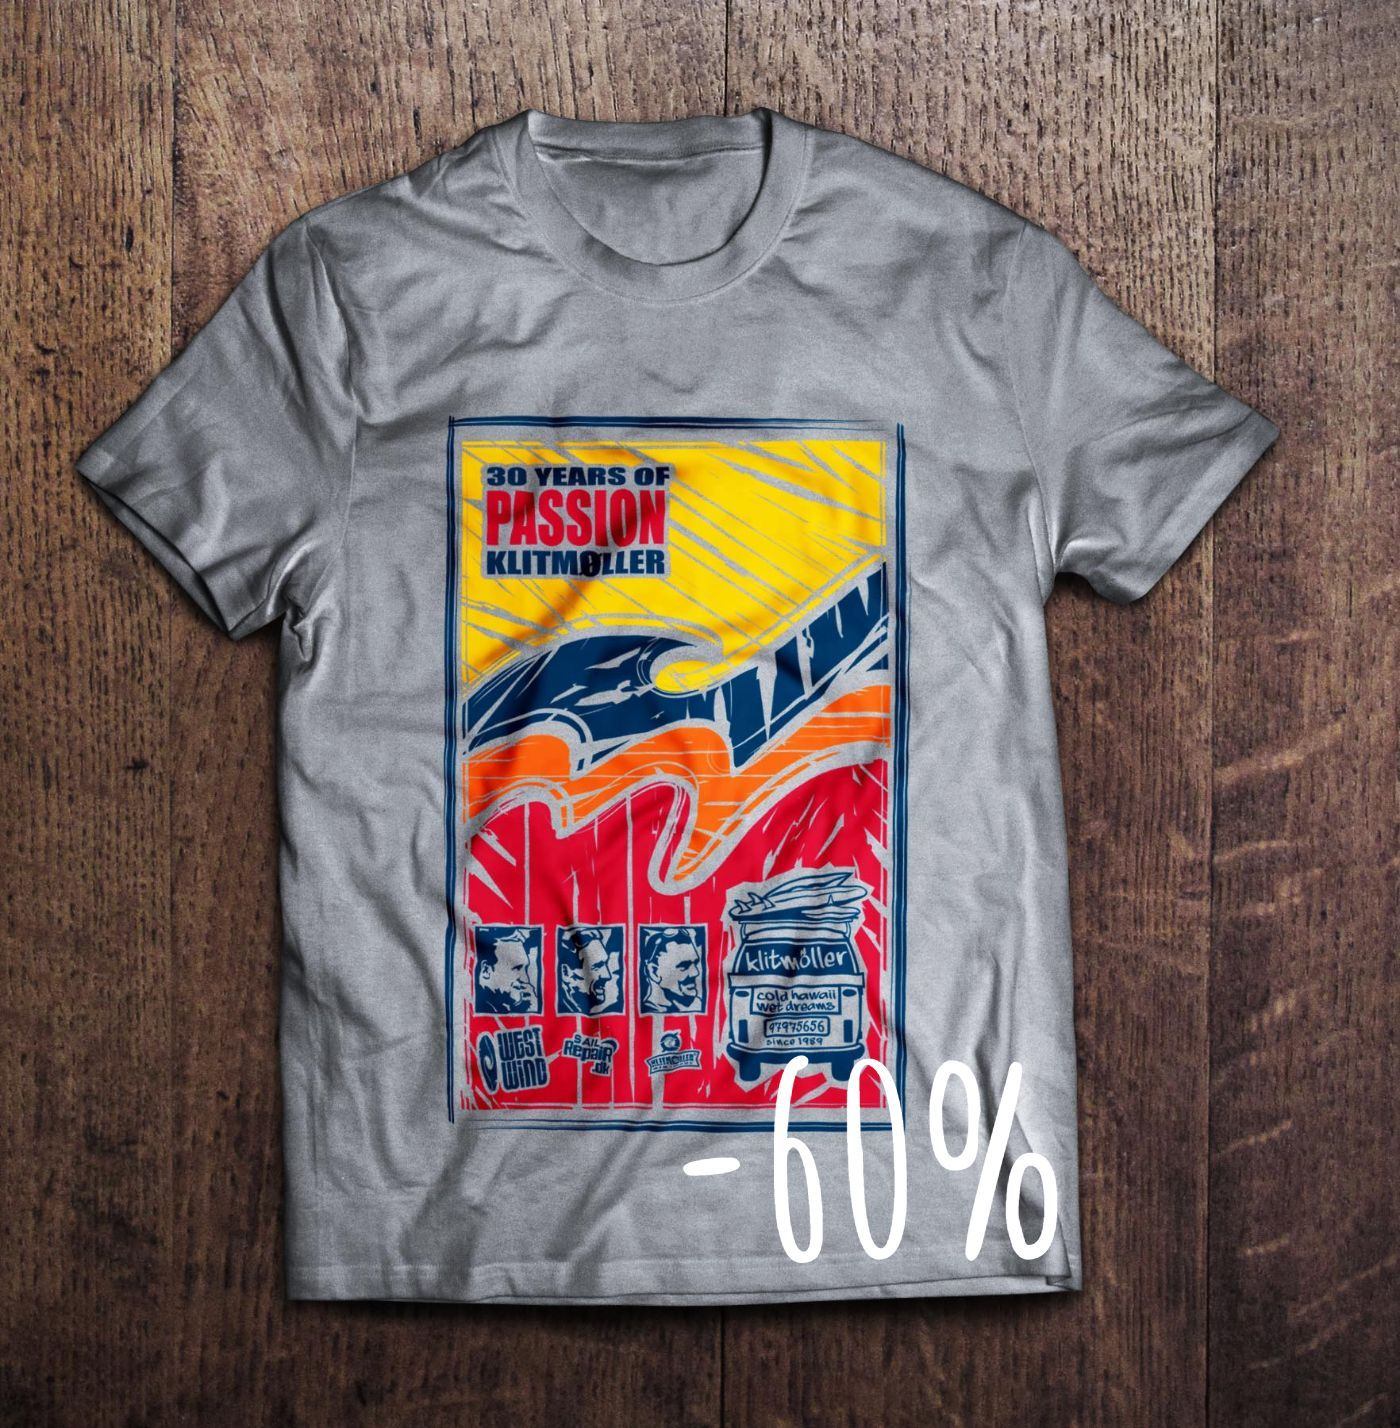 30 Years of Passion T-shirt (-60%)